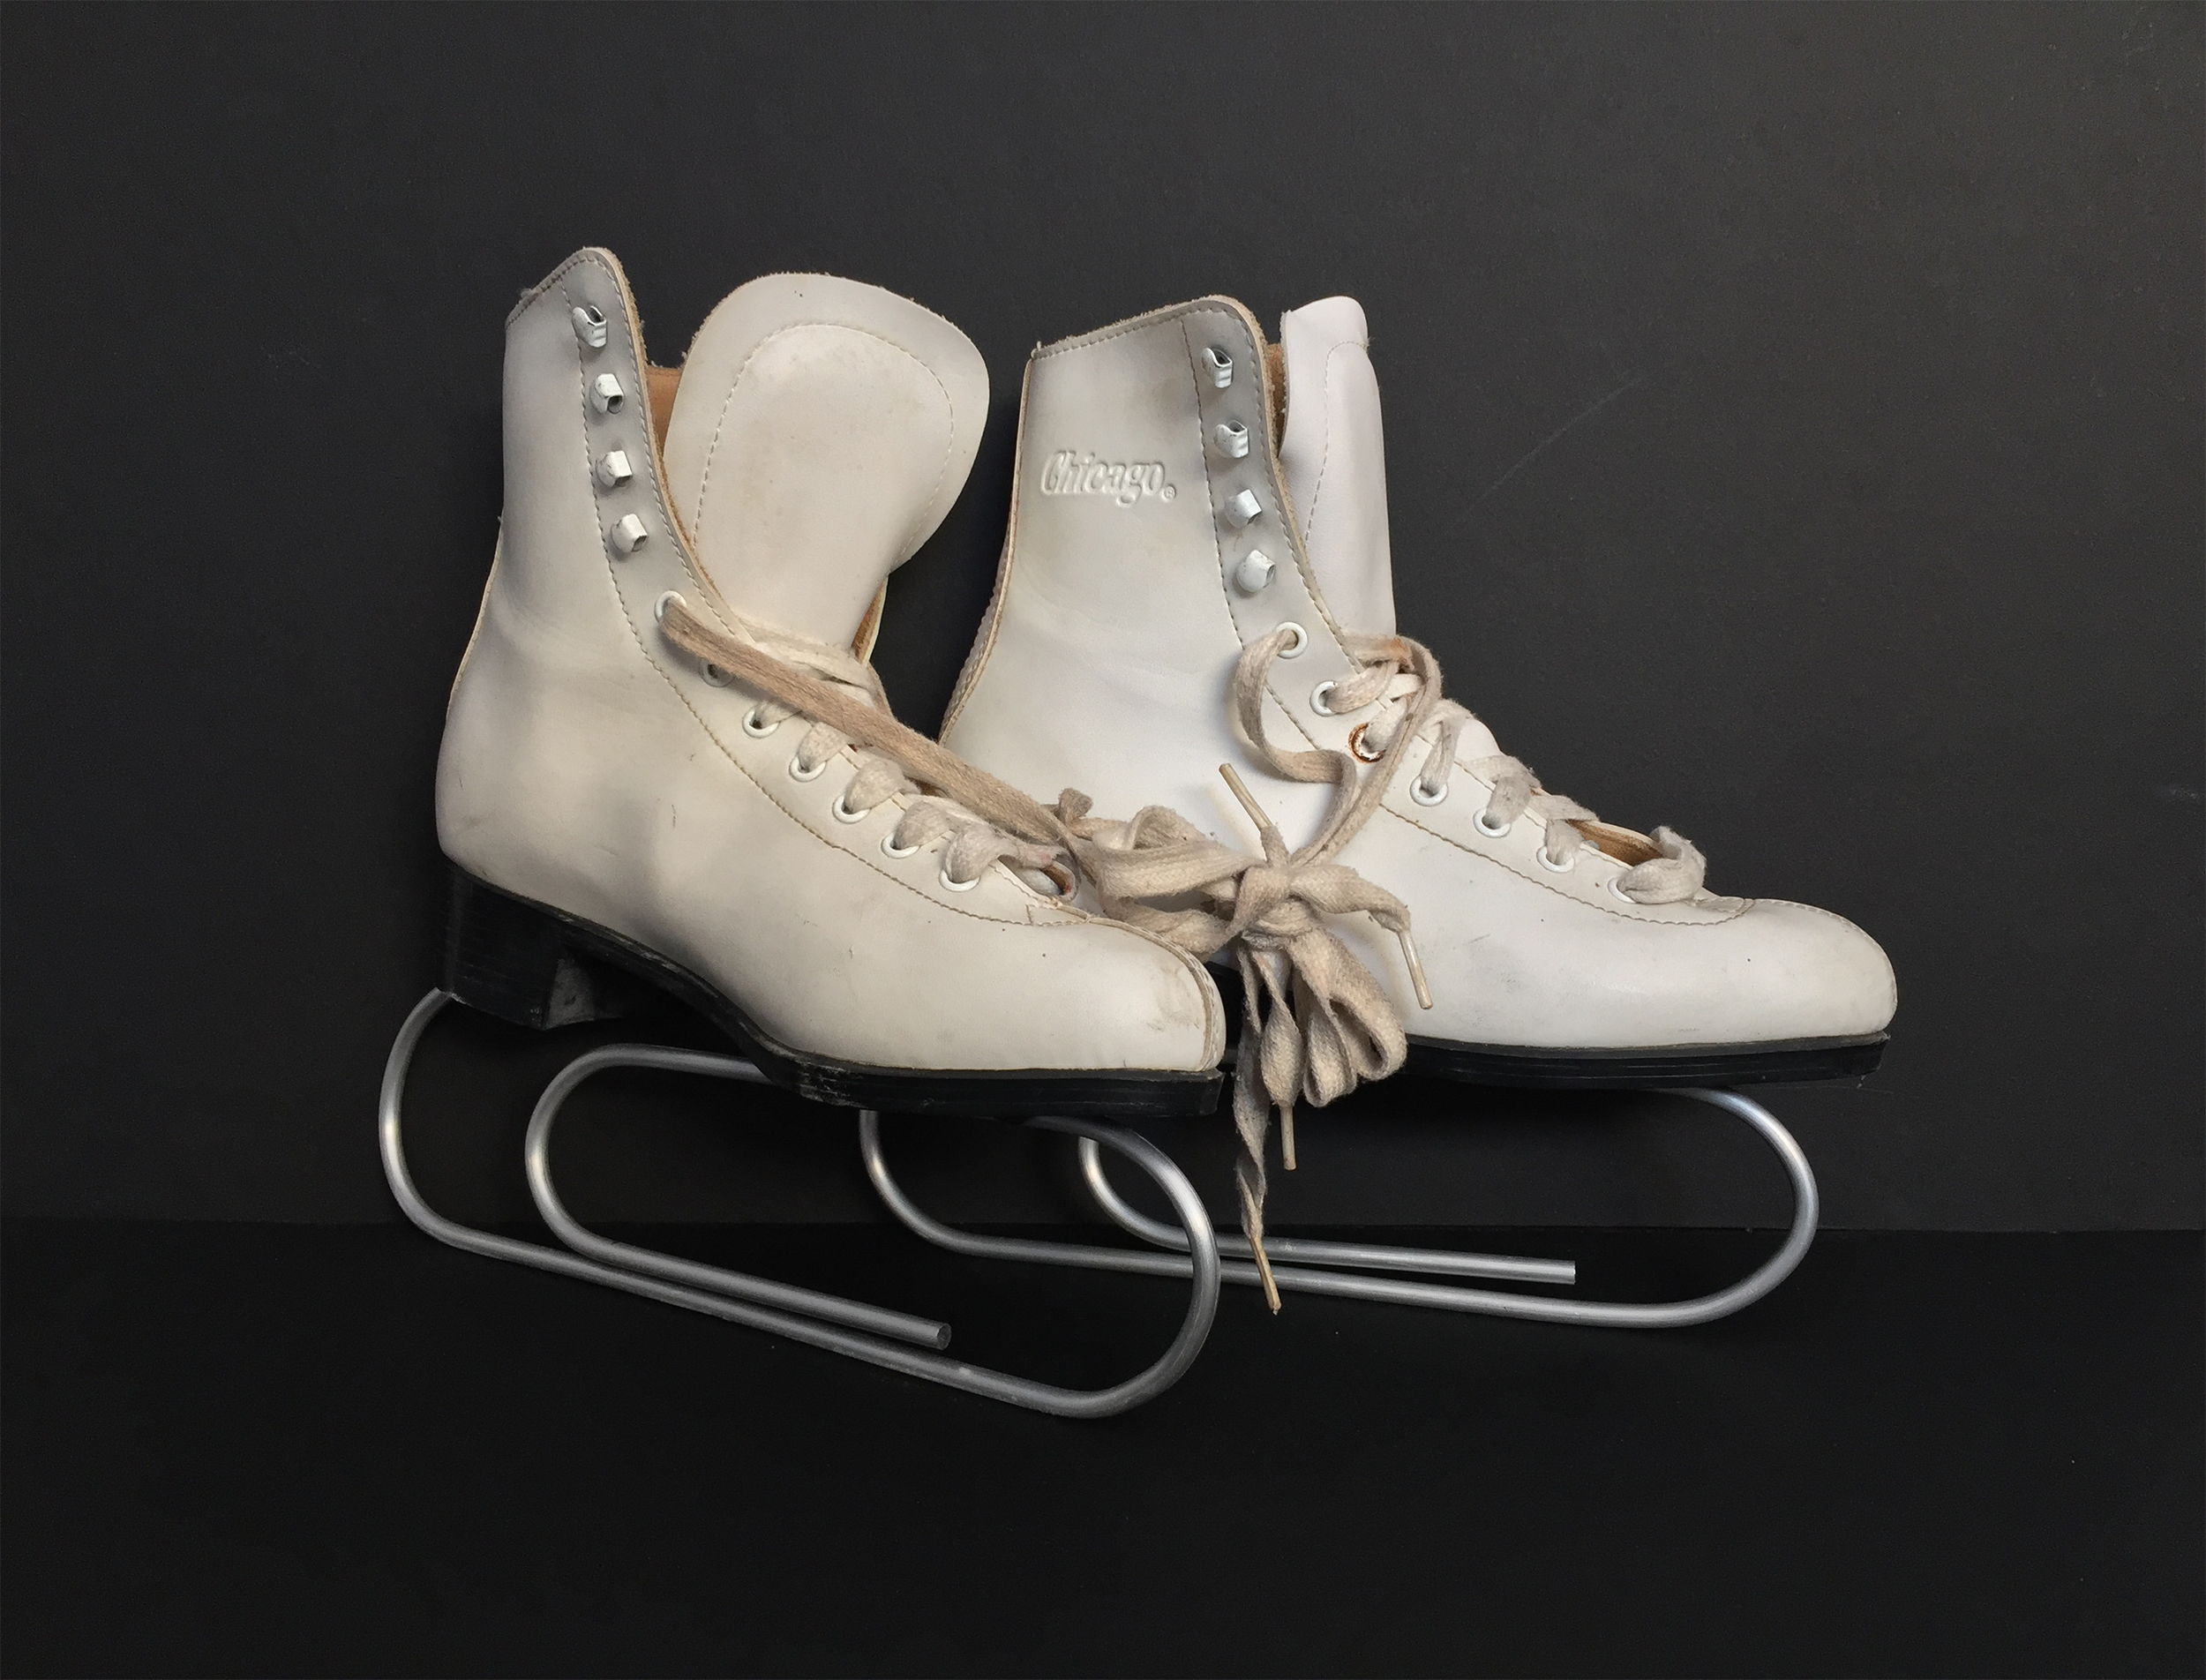 Paperclip Ice Skates